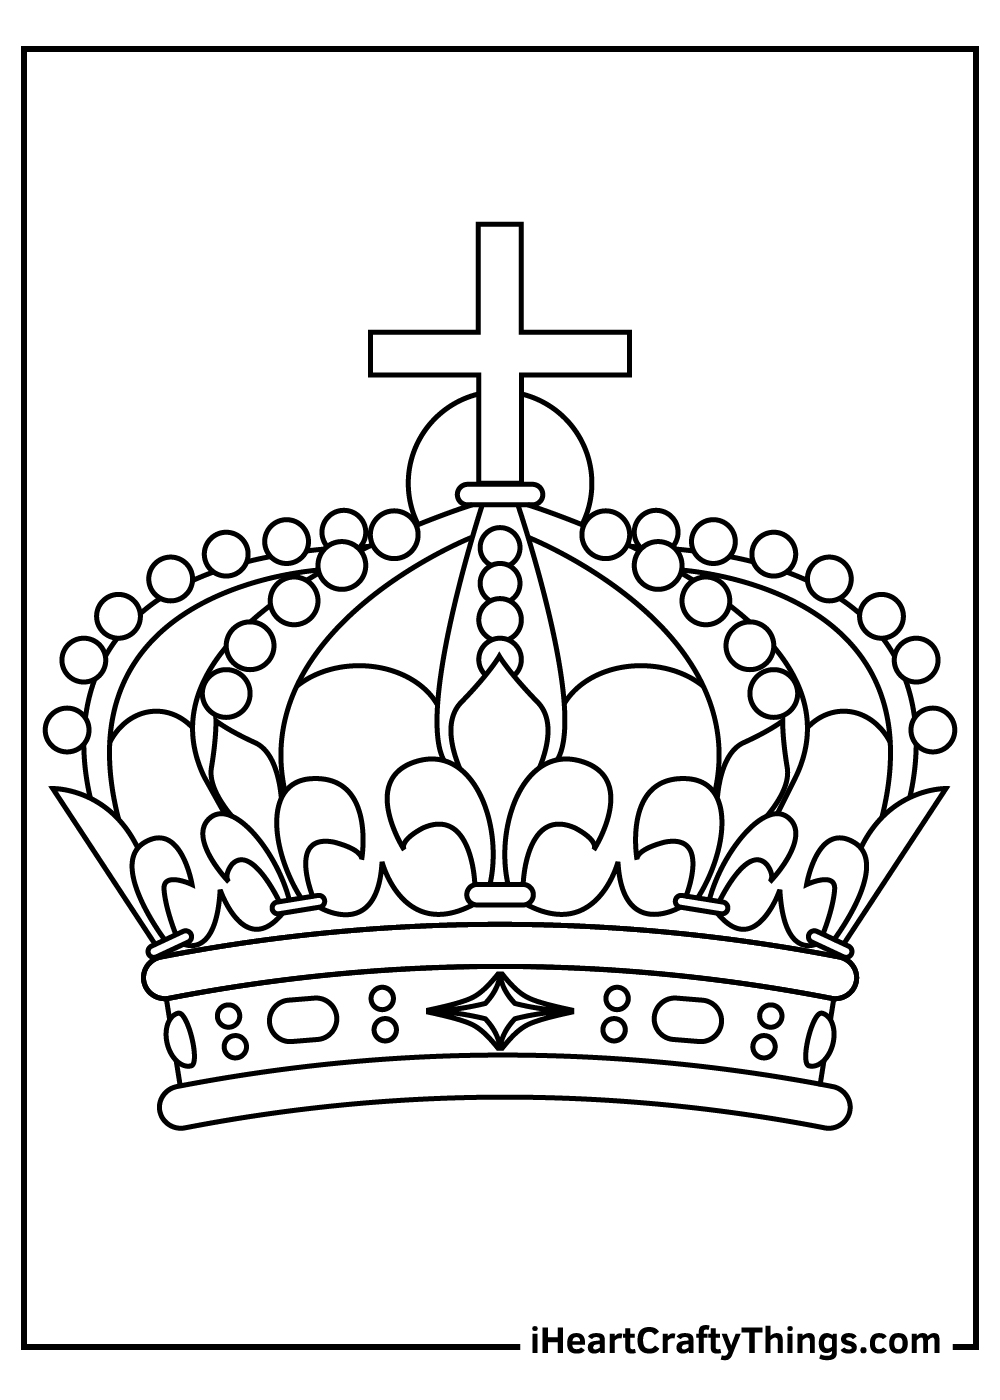 royal crown coloring pages free download